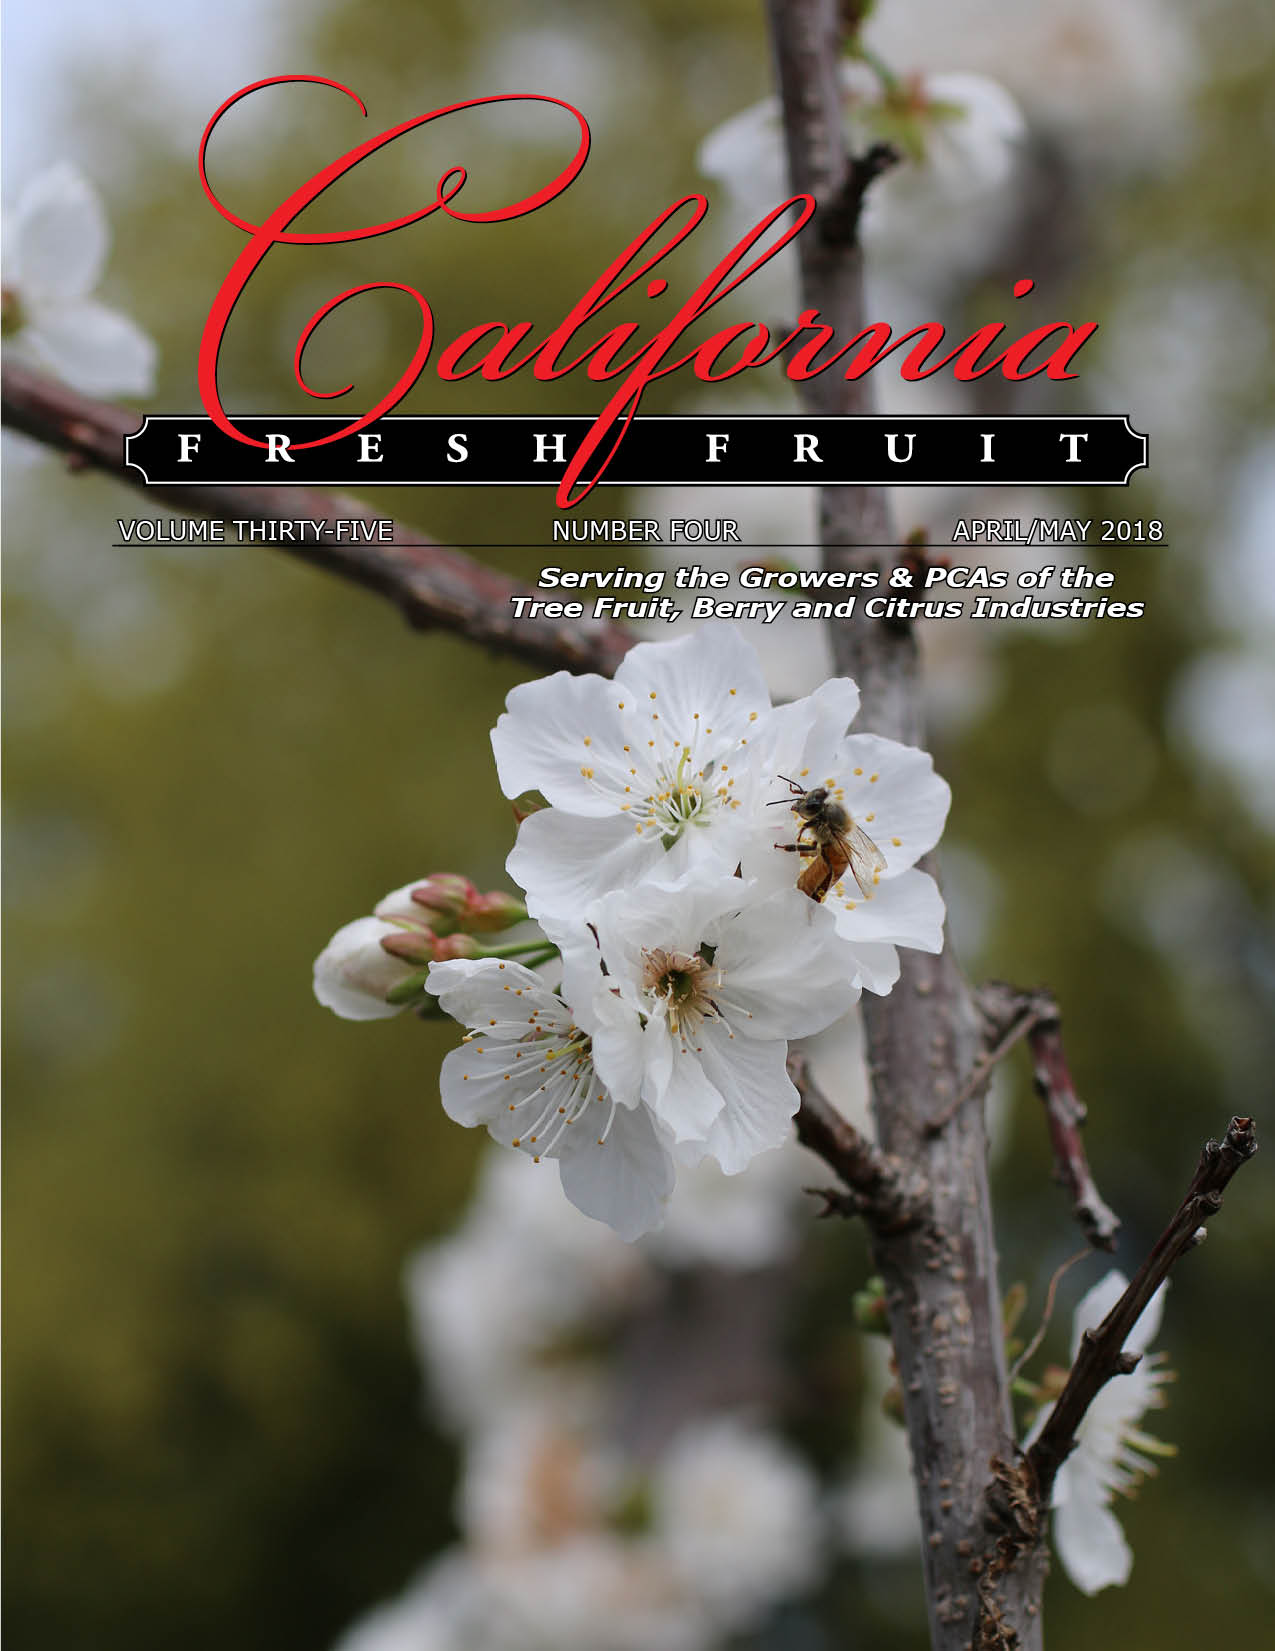 California Fresh Fruit Magazine April 2018 Issue